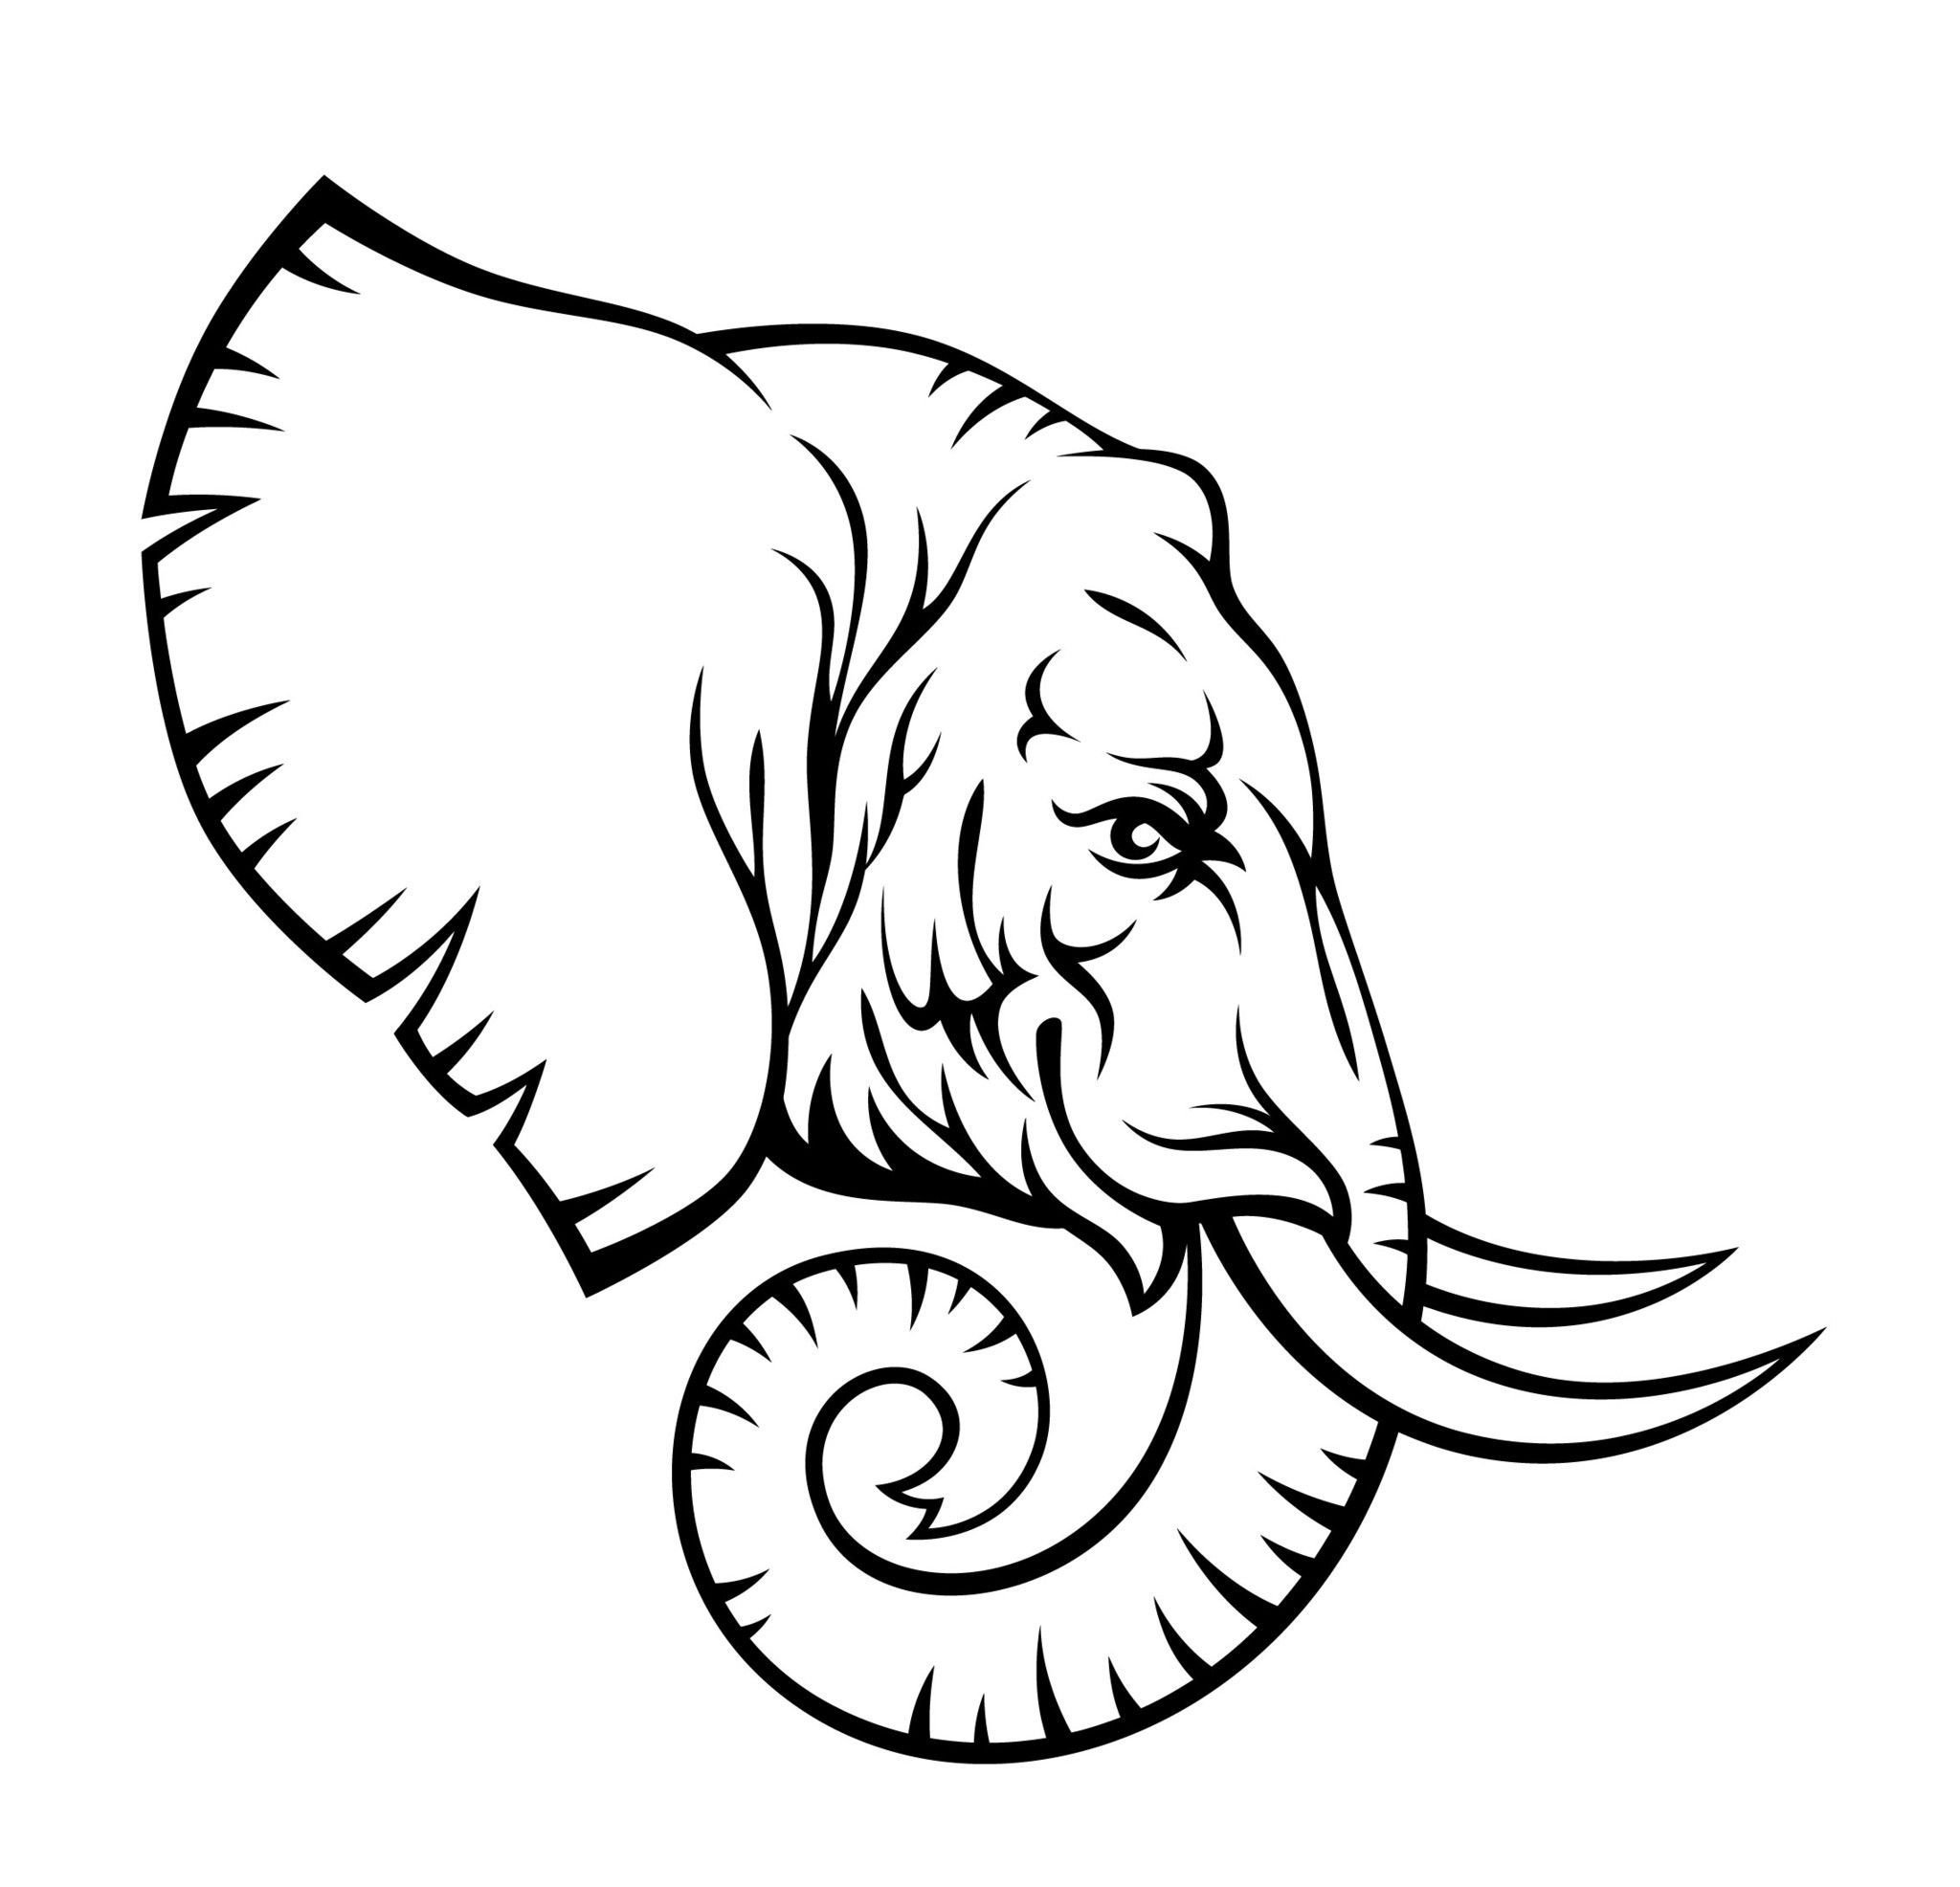 40+ Elephant Face Clipart Black And White